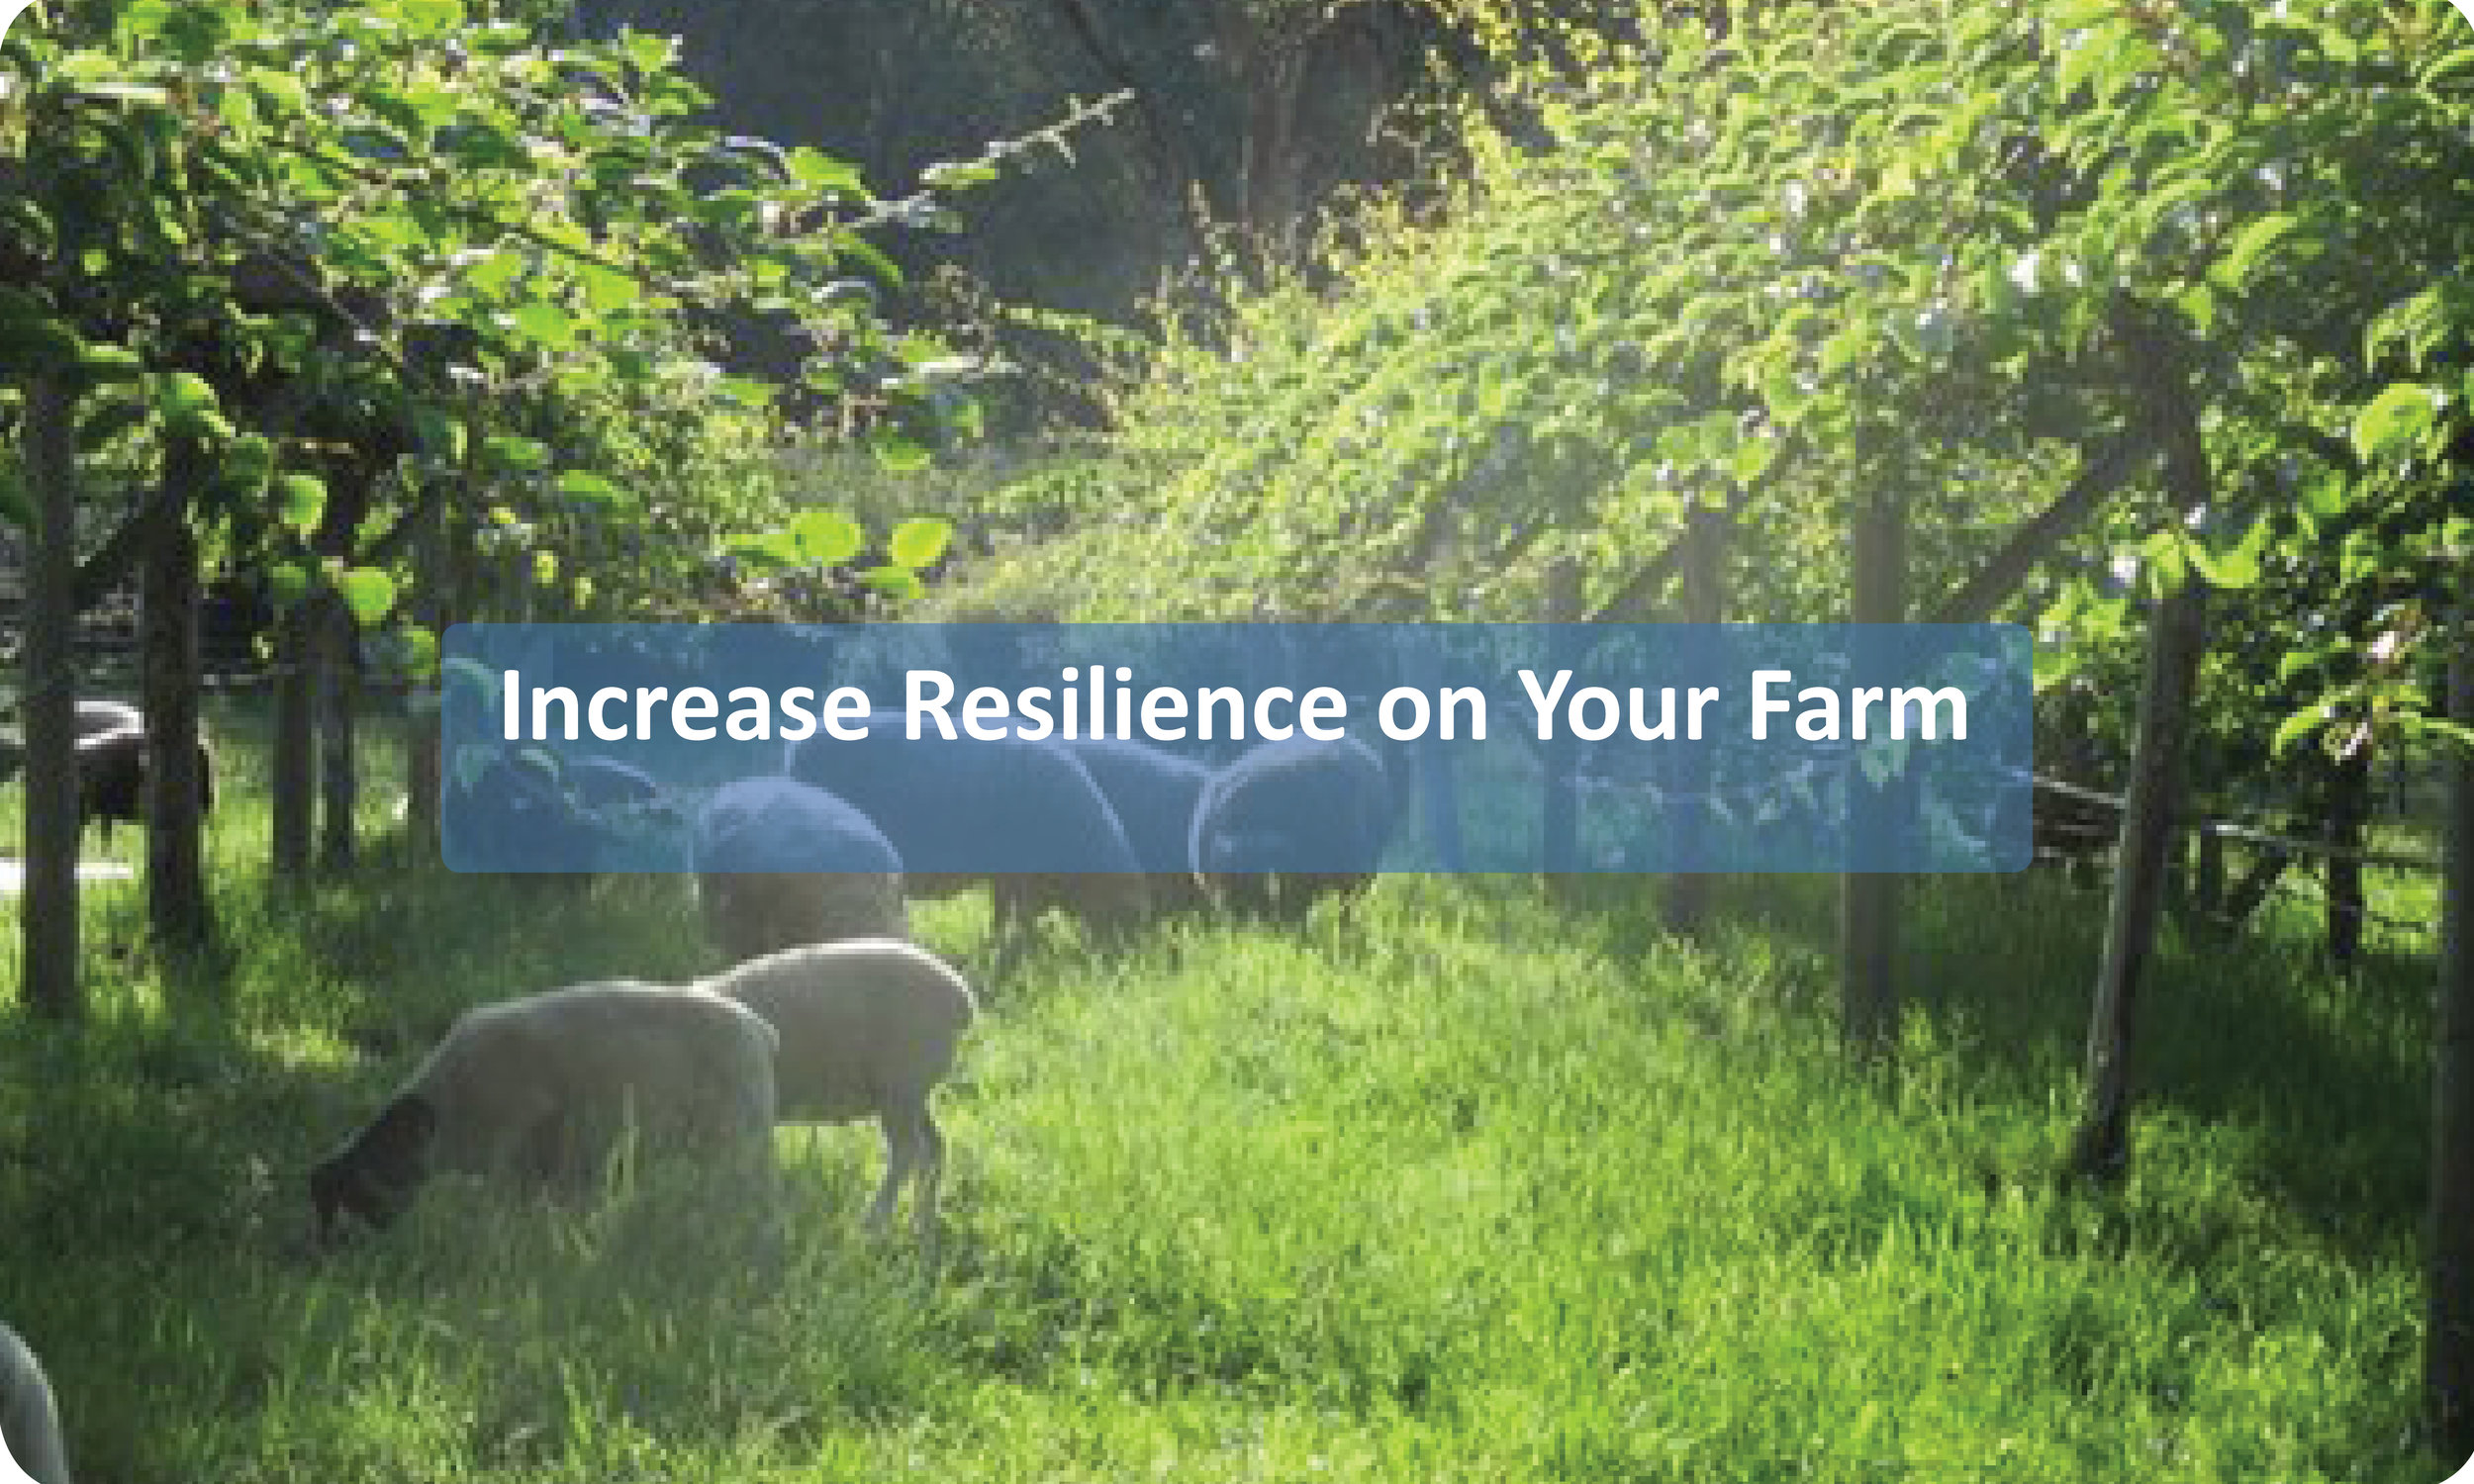 Increase Resilience on Your Farm